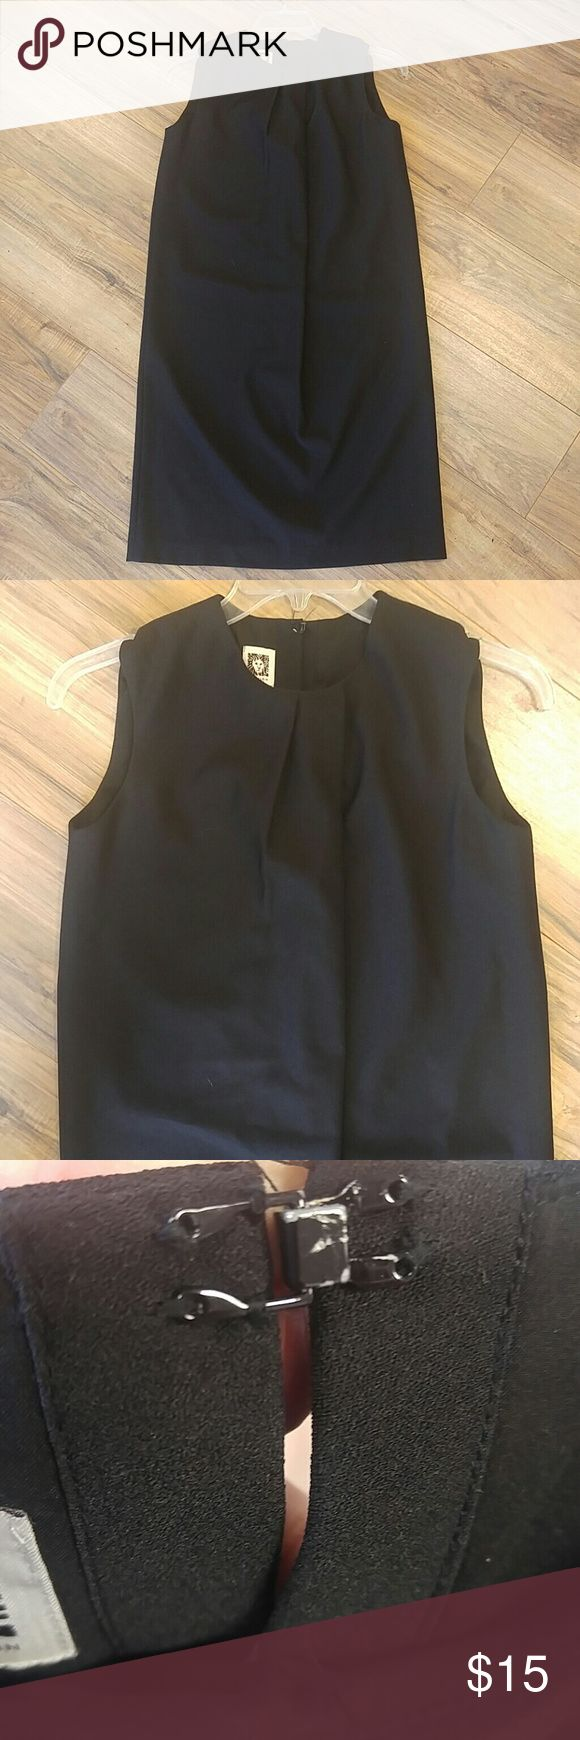 Classy Anne Klein black sheath dress size 6 Simple and non comforming. Polyester hangs and will not hug the body. I think this would be flattering as a maternity dress in early stages of pregnancy. Anne Klein Dresses Midi